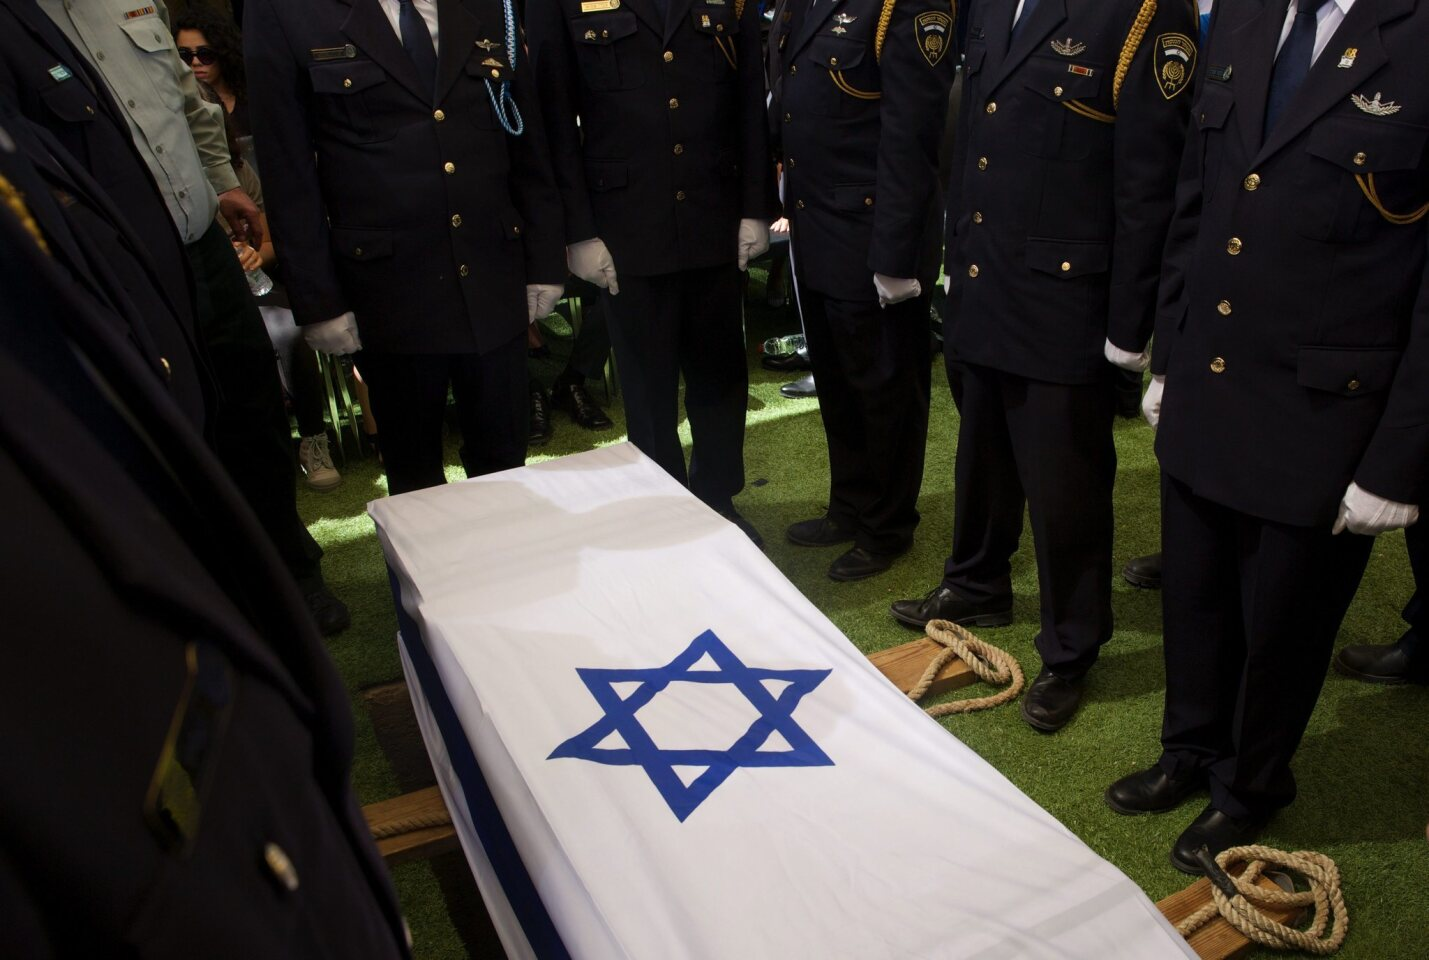 Members of an Israeli Knesset guard stand at attention around the flag-draped coffin of former Israeli President and Nobel Peace Prize winner Shimon Peres at his funeral on Sept. 30, 2016, in Jerusalem.